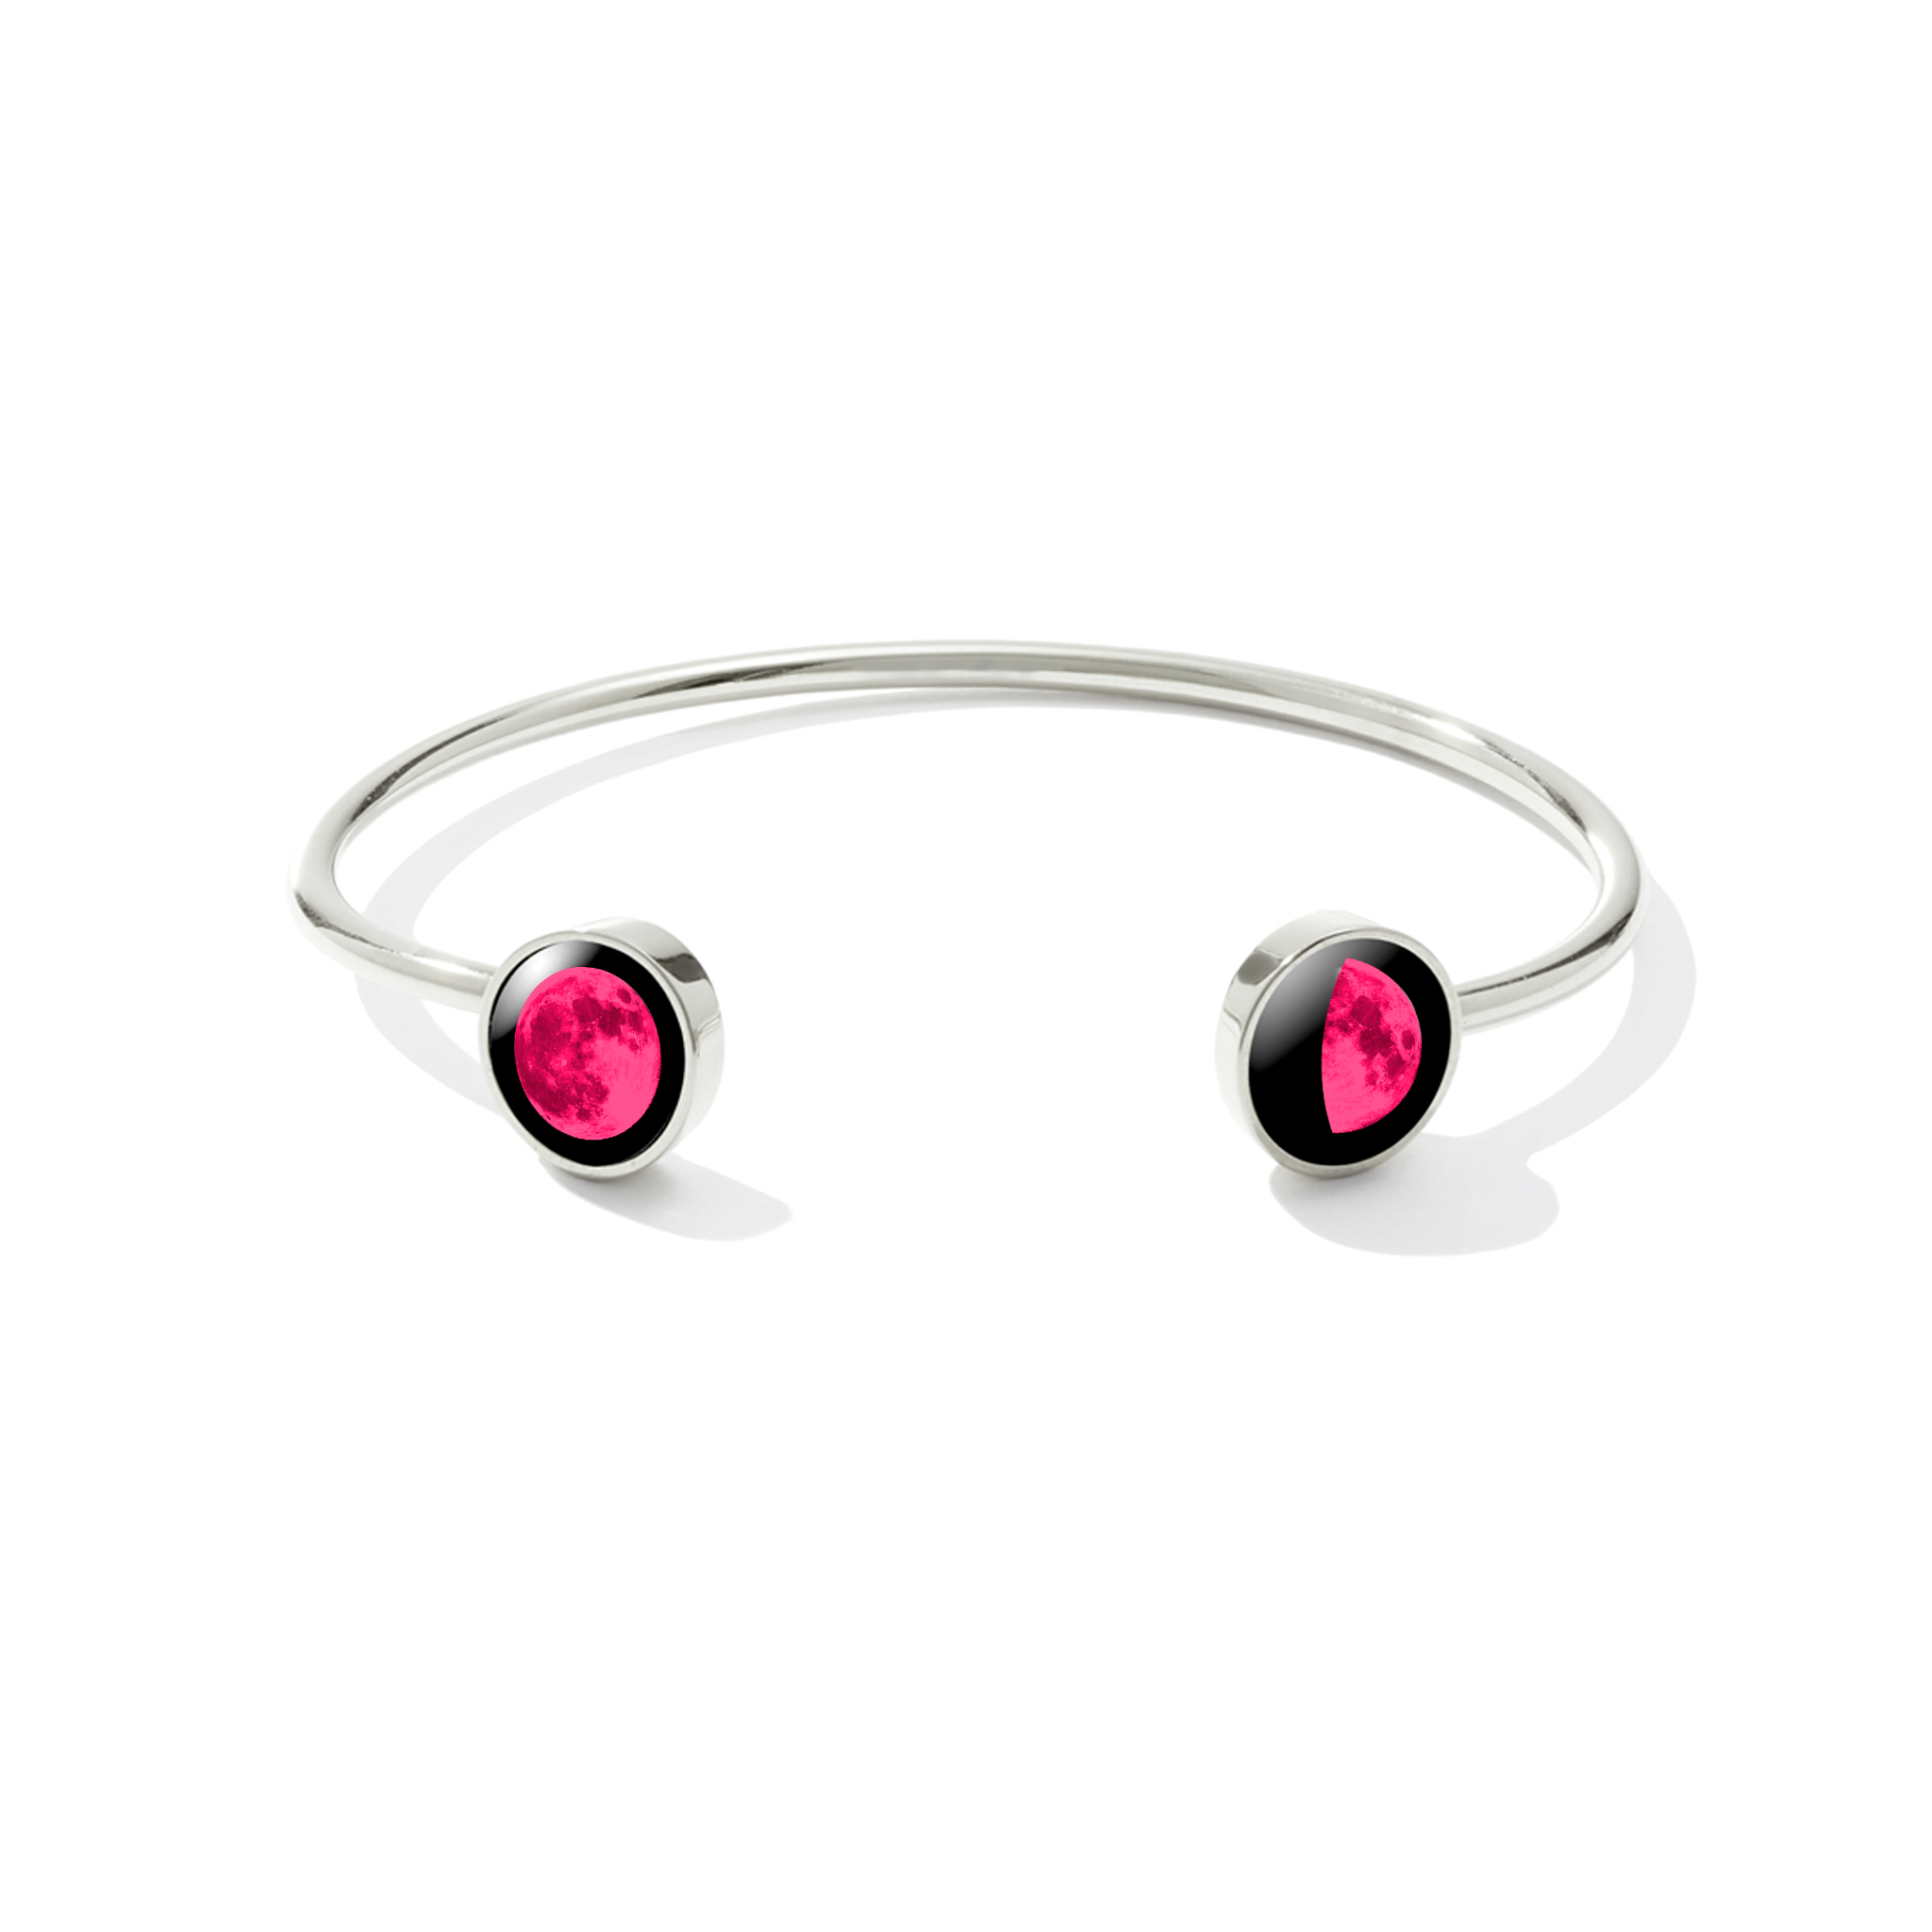 Pink Moon Lunar Dyad Cuff in Stainless Steel